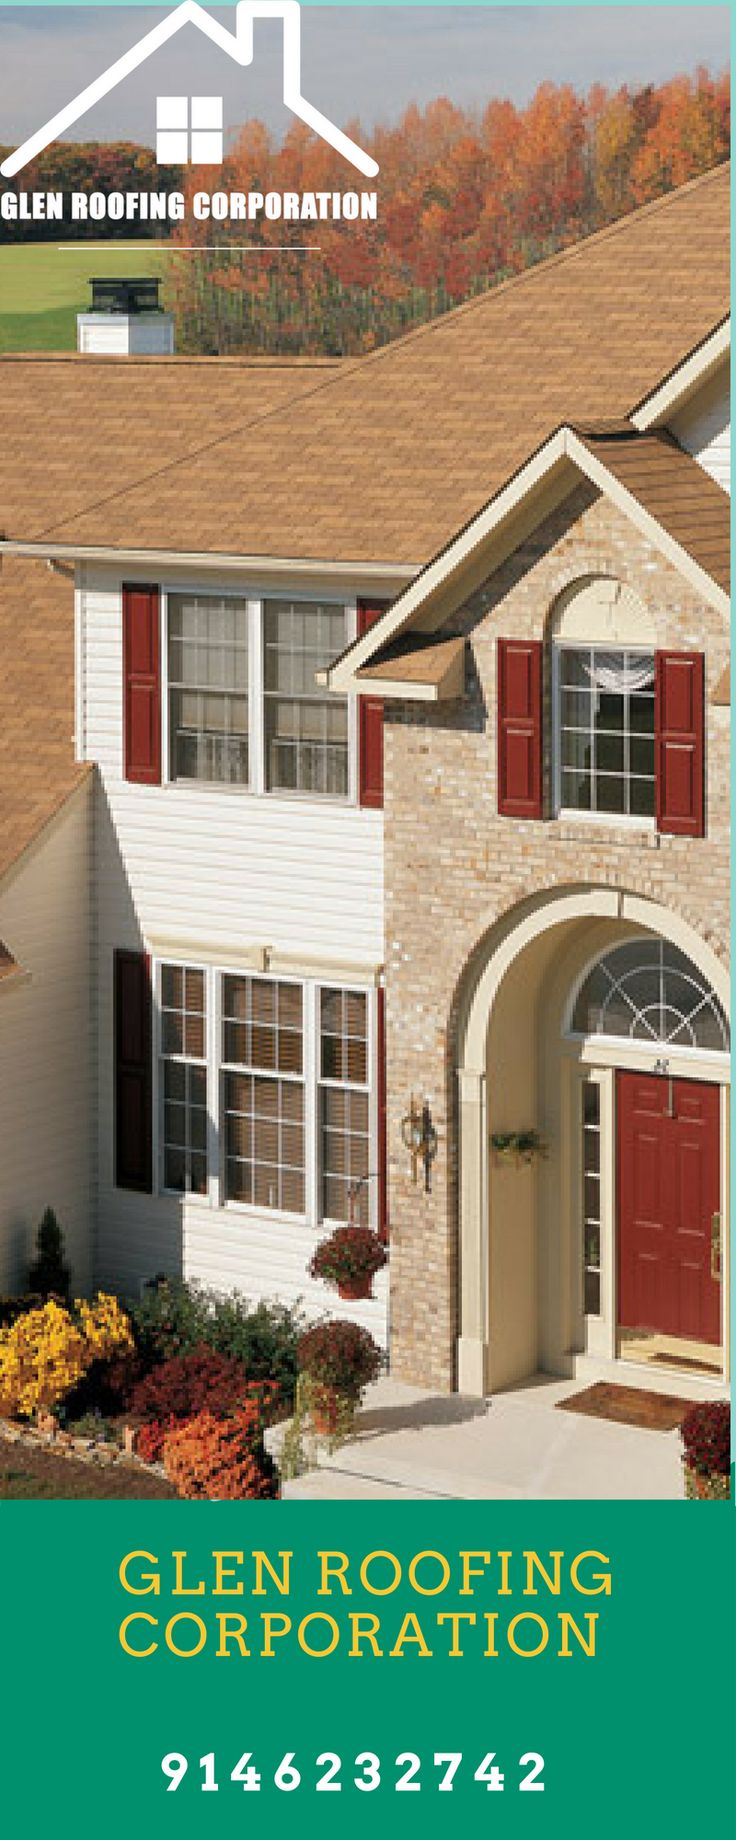 Glen Roofing Corporation is one of the most trusted roof